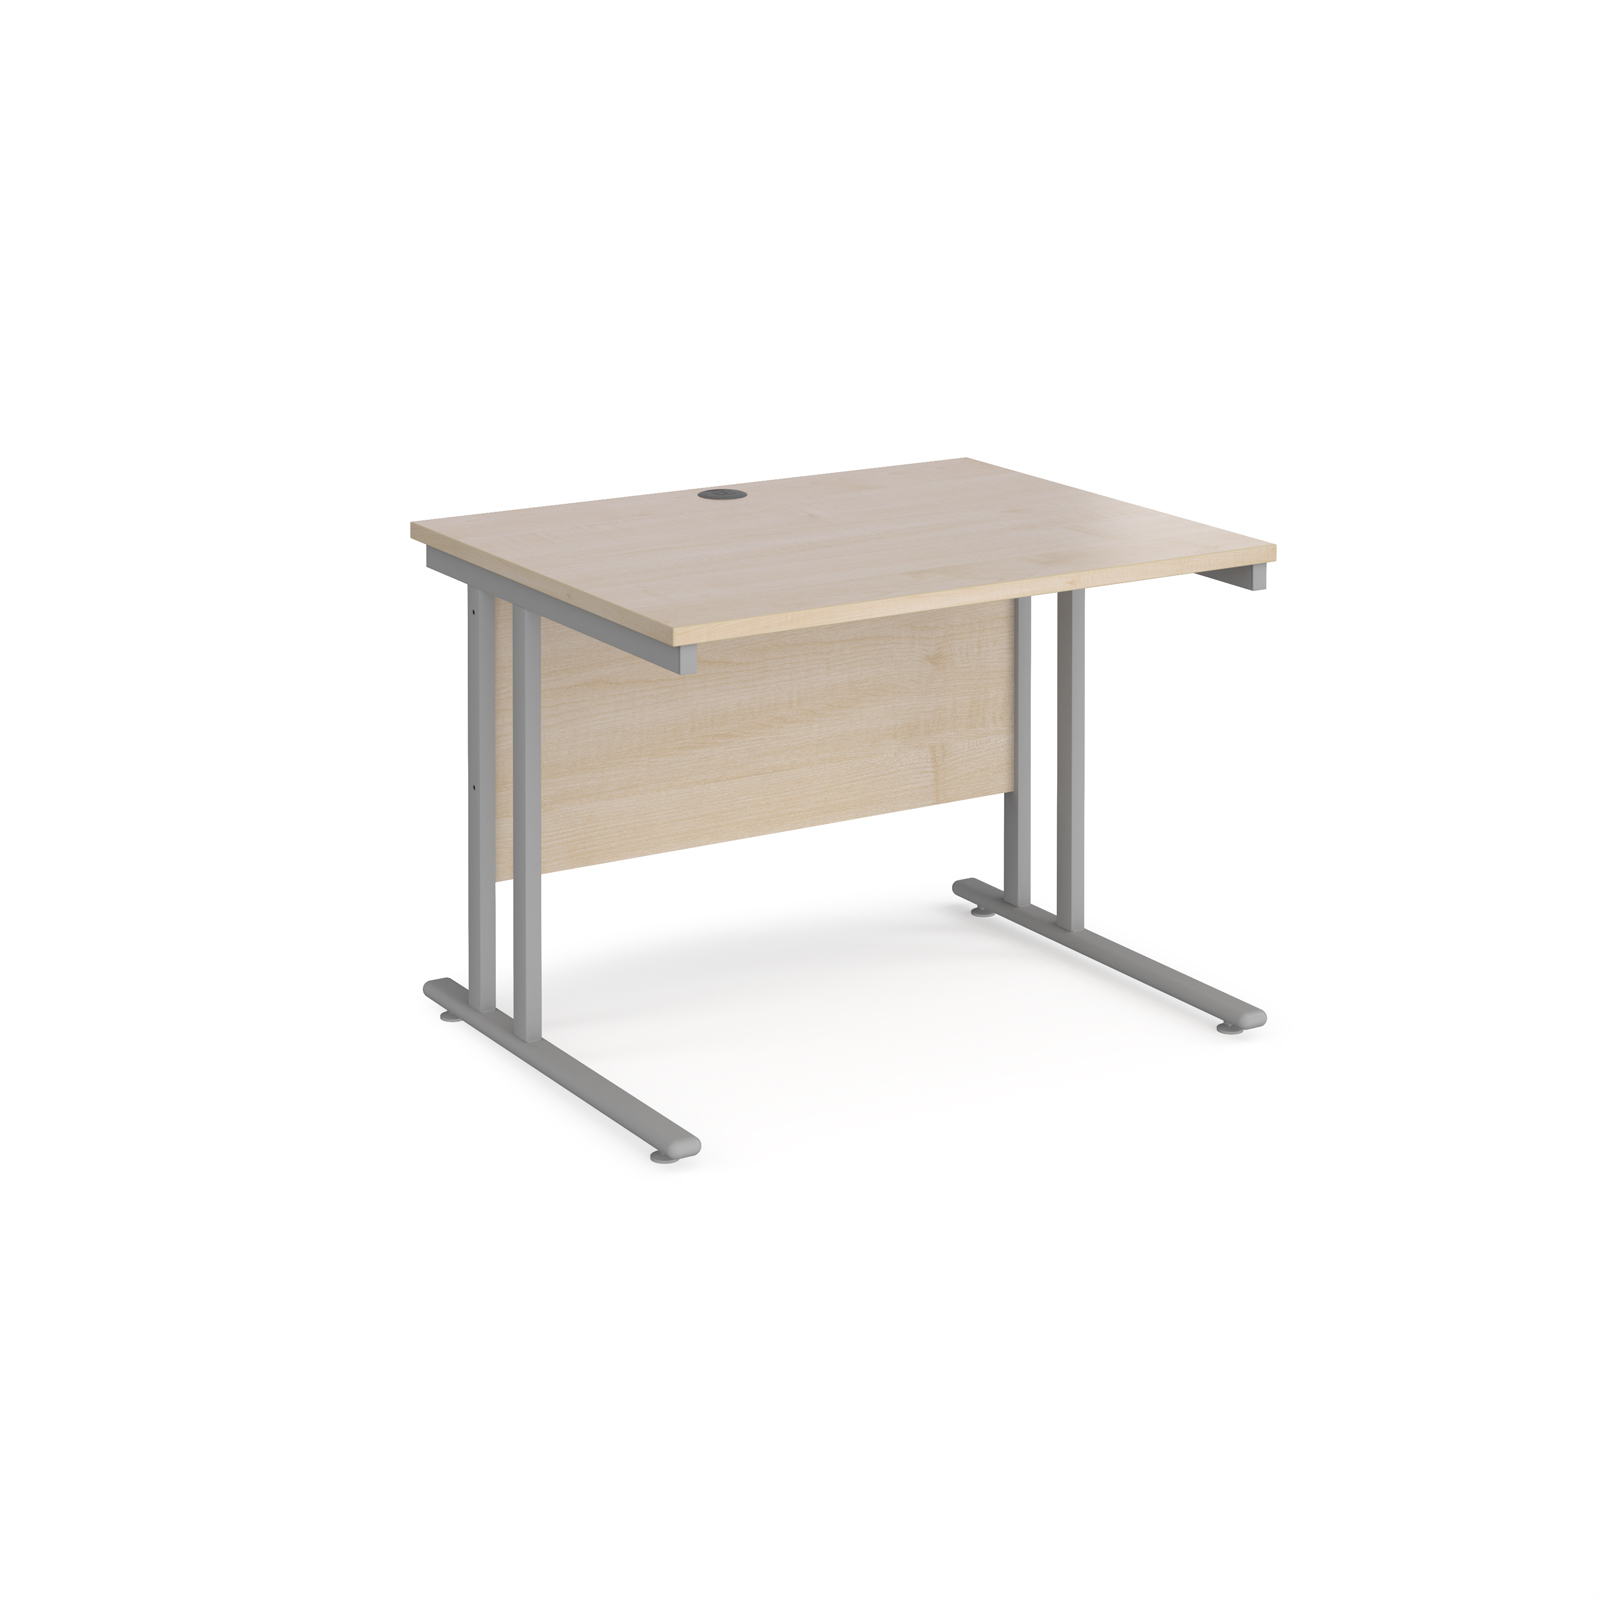 Rectangular Desks Maestro 25 straight desk 1000mm x 800mm - silver cantilever leg frame, maple top